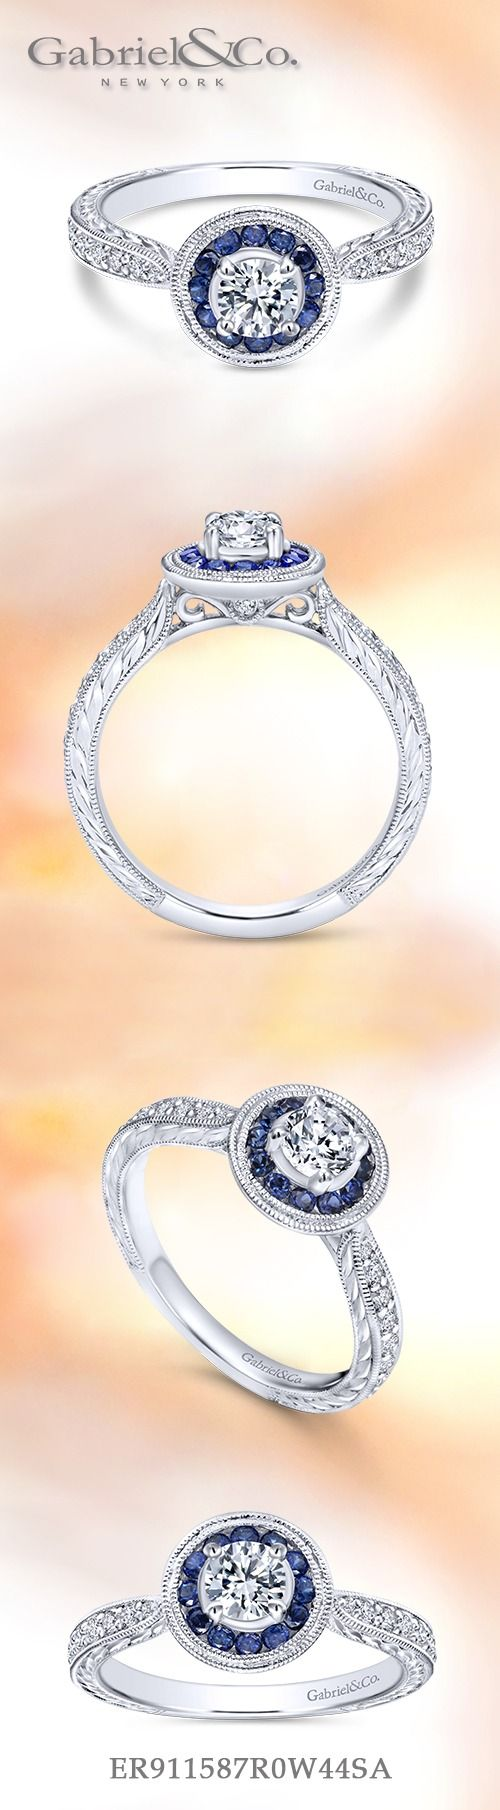 Gabriel NY - Voted #1 Most Preferred Fine Jewelry and Bridal Brand. Vintage 14k White Gold Round Halo  Engagement Ring